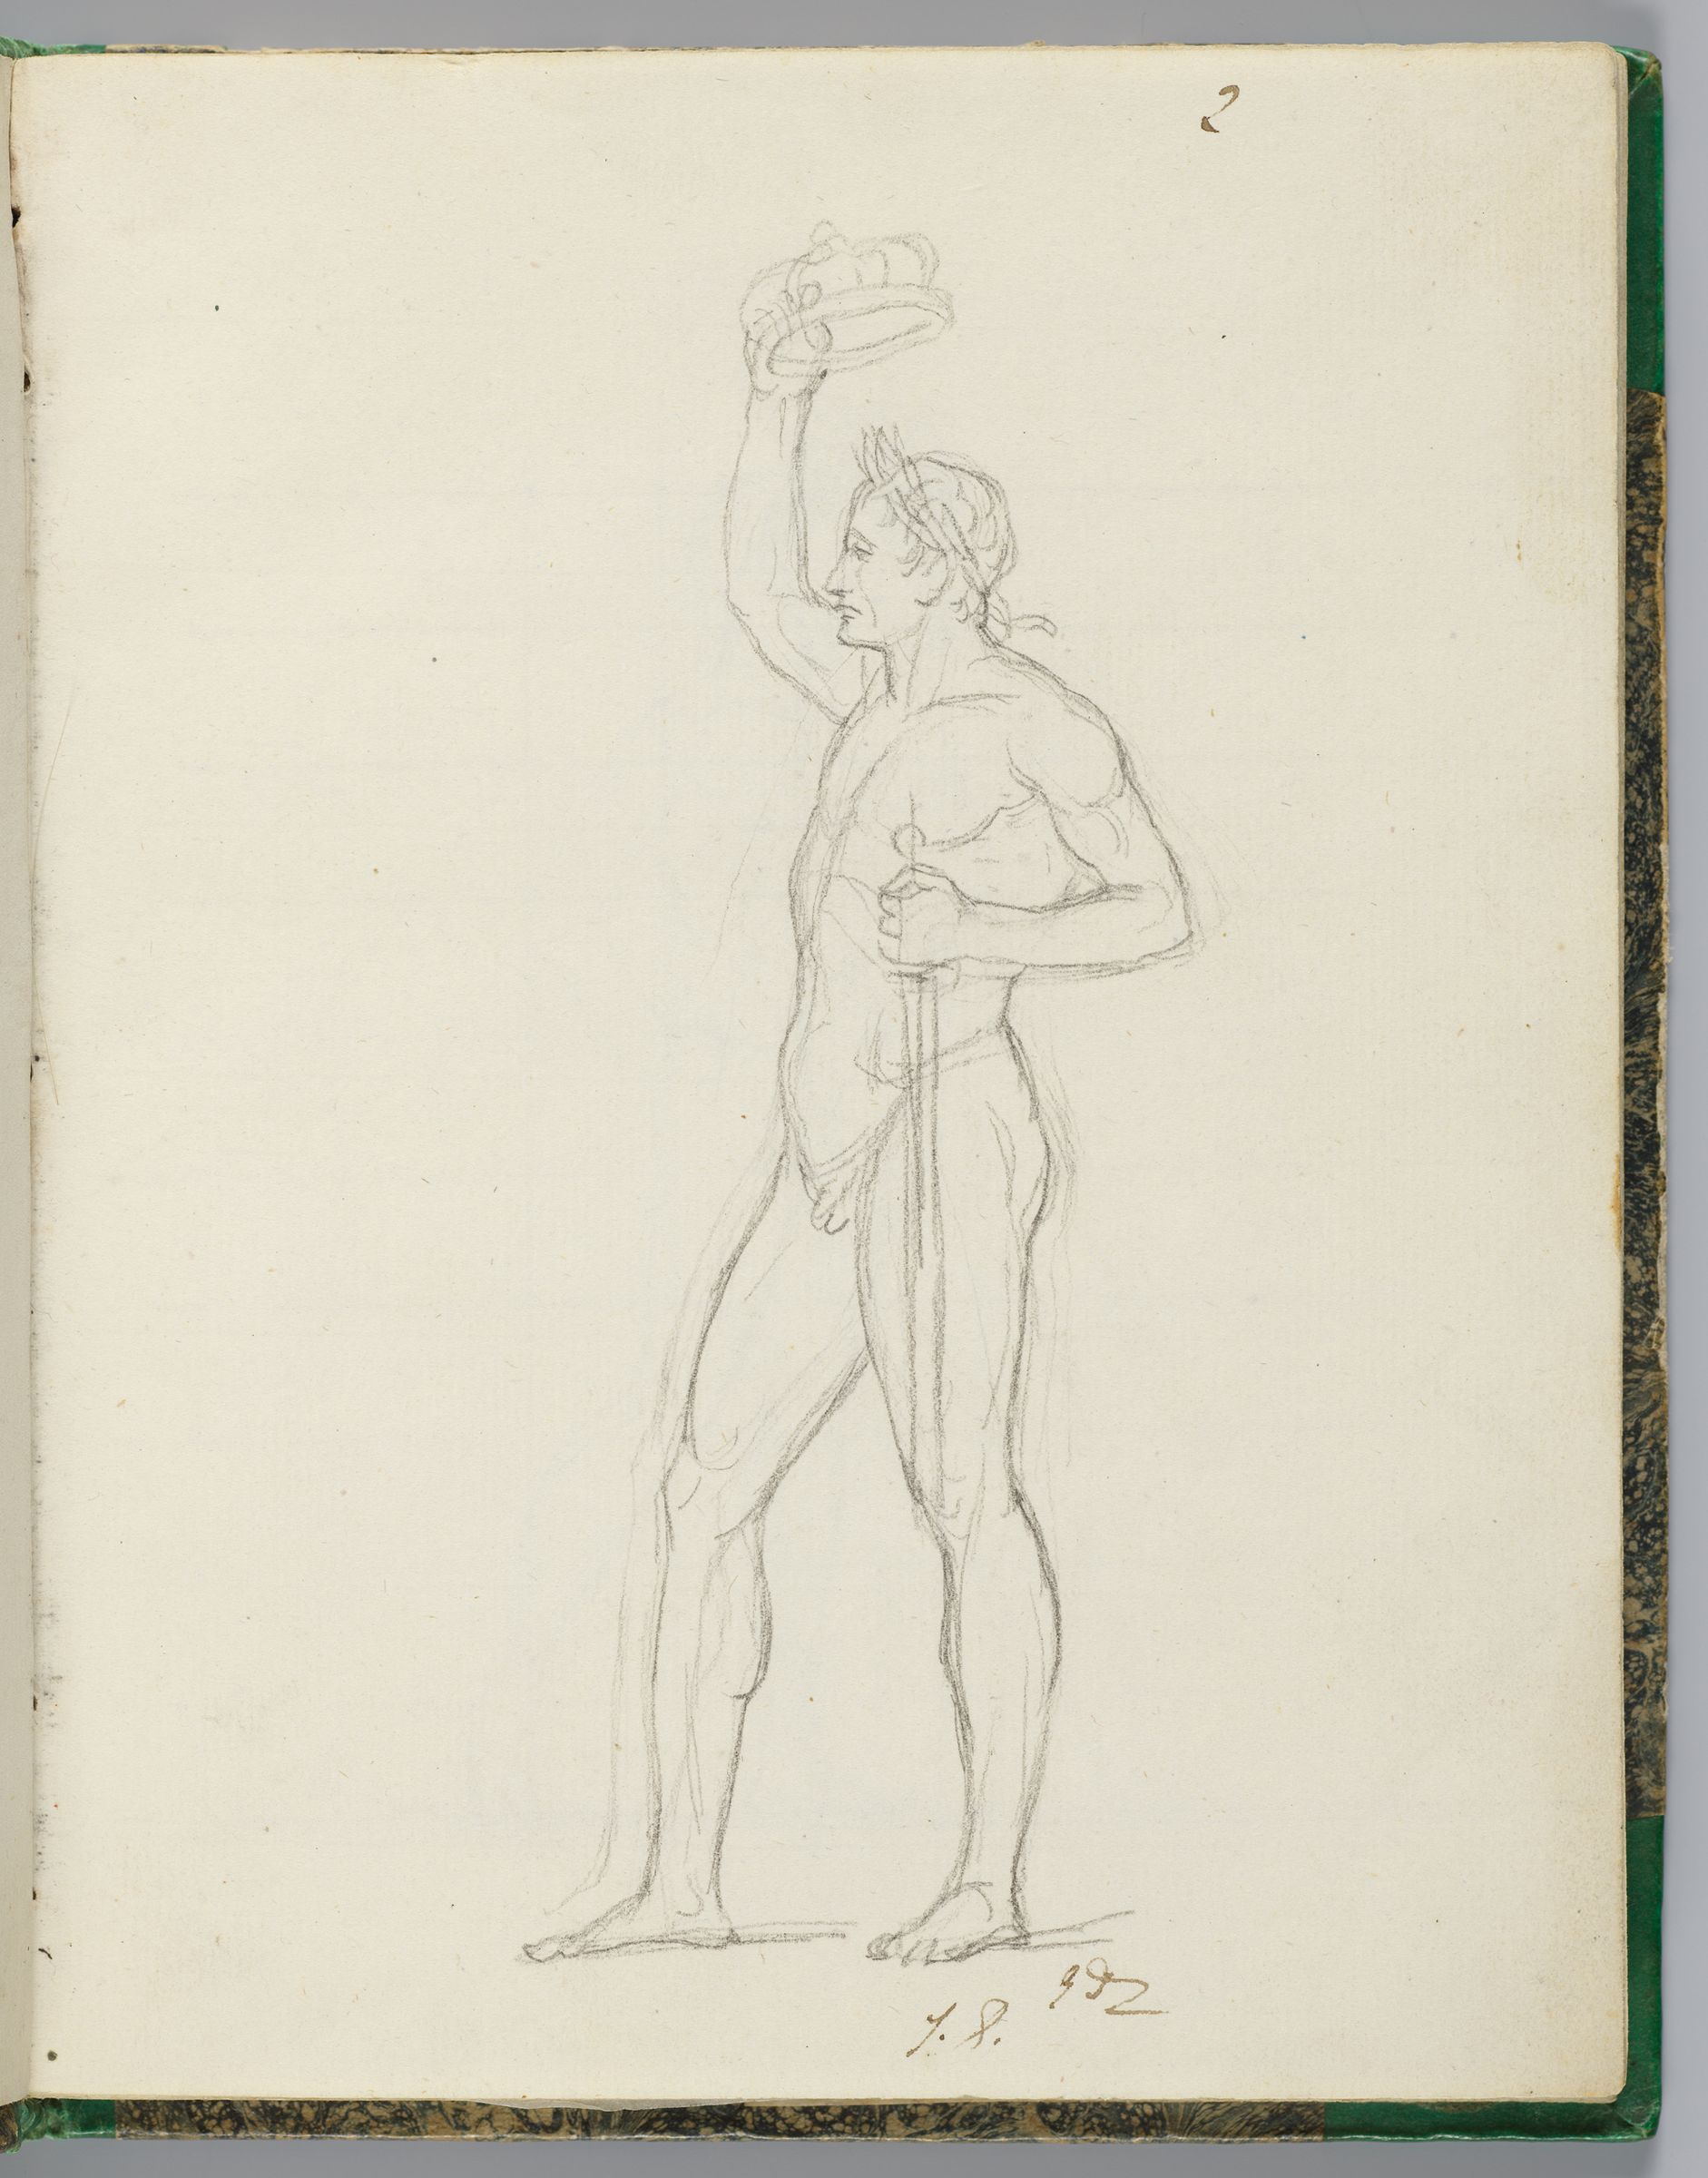 Napoleon, Nude, Crowning Himself While Holding A Sword; Verso: Napoleon, Nude, Crowning Himself